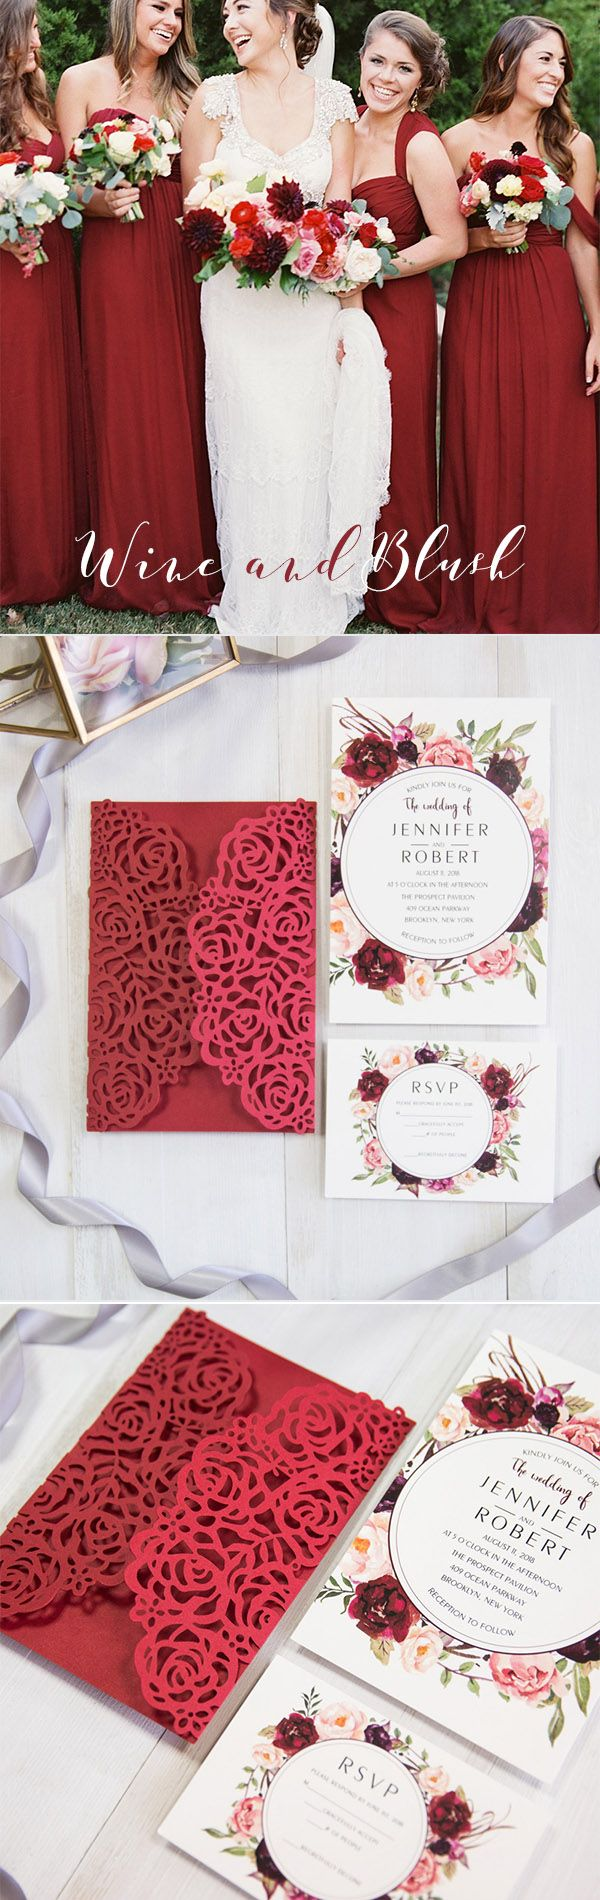 Stunning red and burgundy rose floral laser cut wedding stunning red and burgundy rose floral laser cut wedding invitations ewws203 monicamarmolfo Gallery